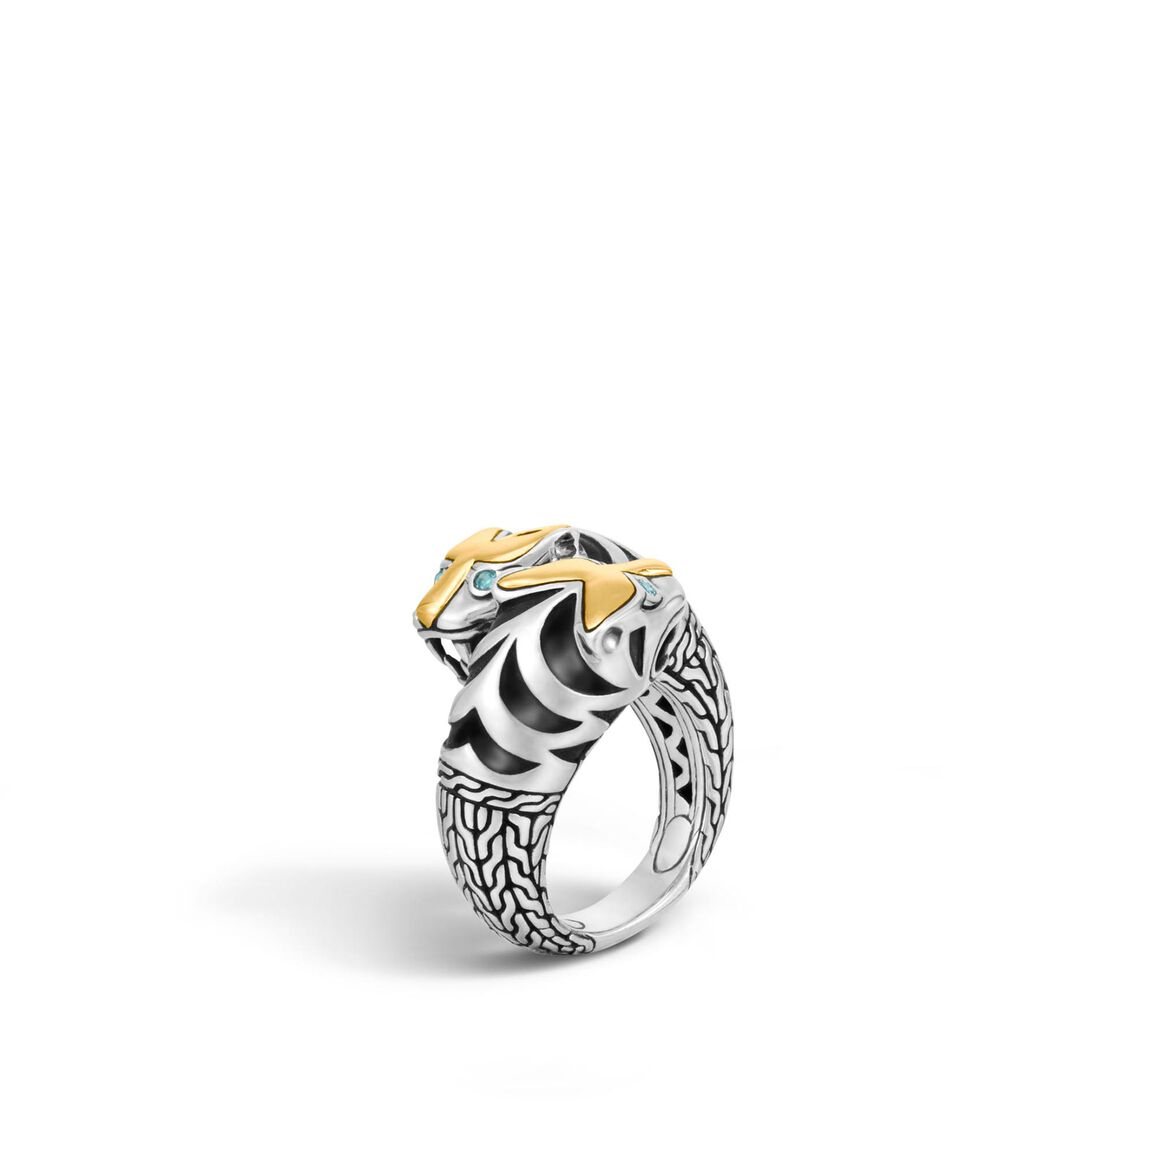 Legends Macan Double Head Bypass Ring, Silver and 18K Gold